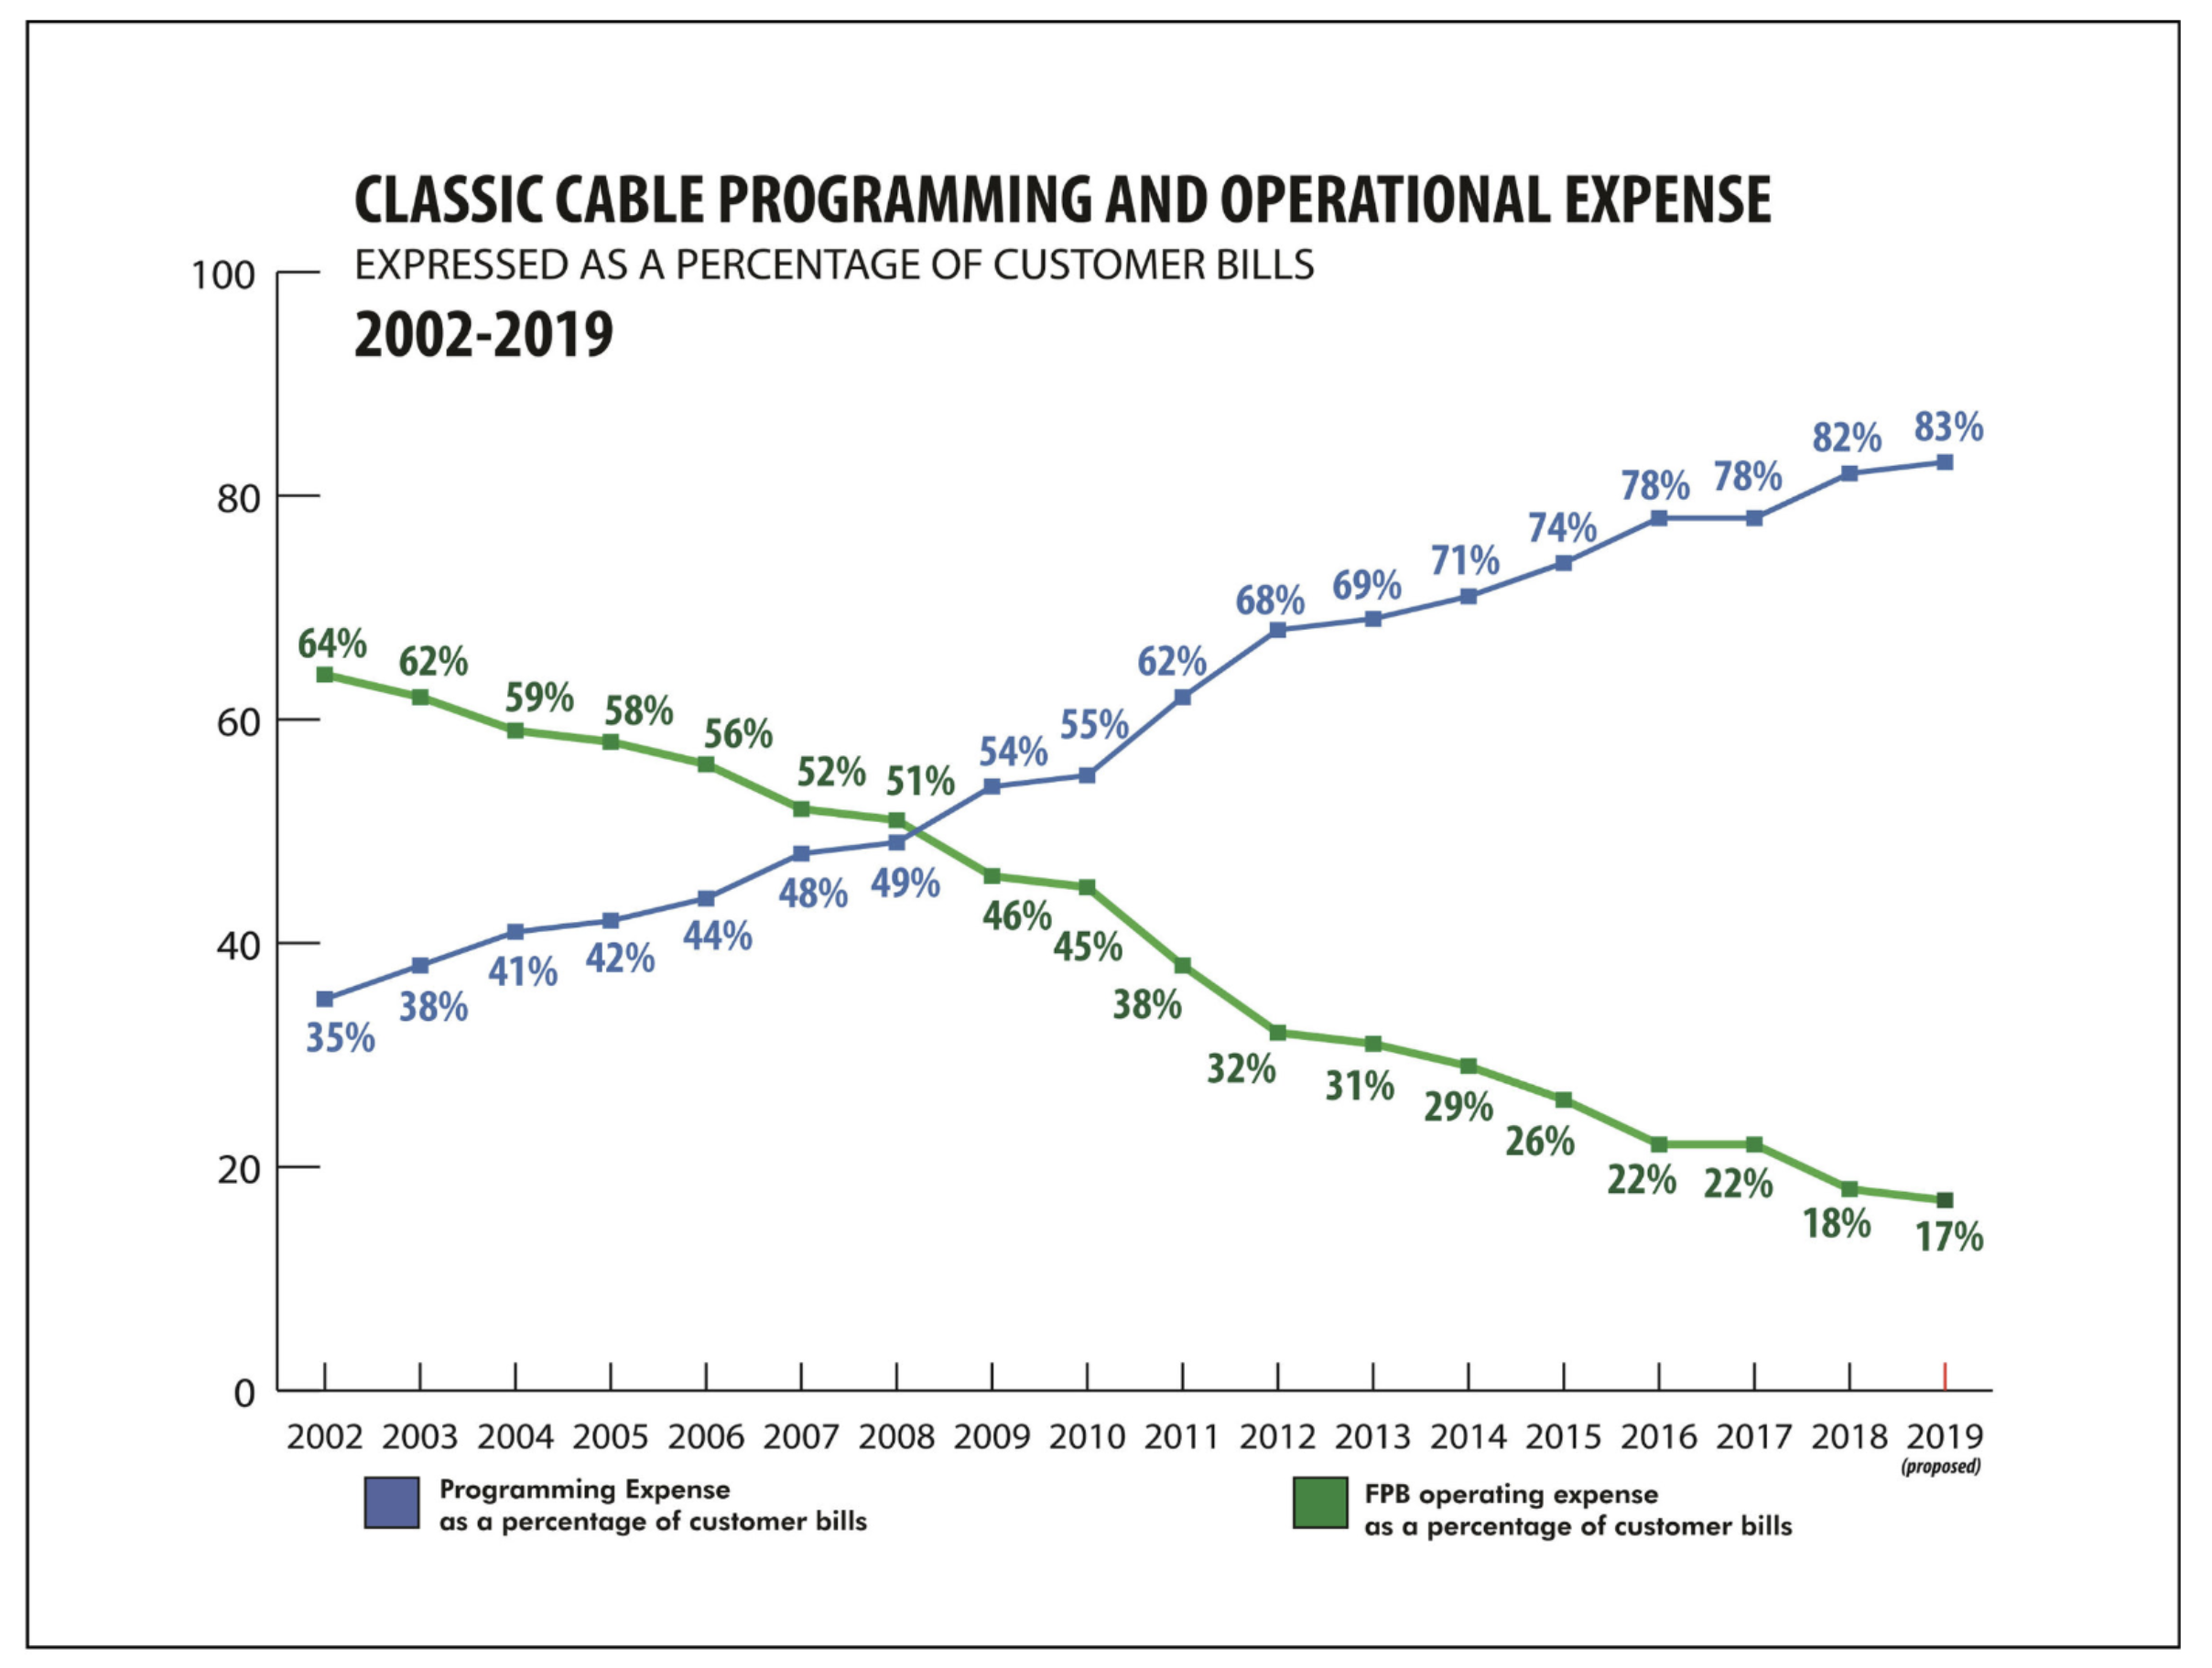 Classic Cable Programming and Operational Expense